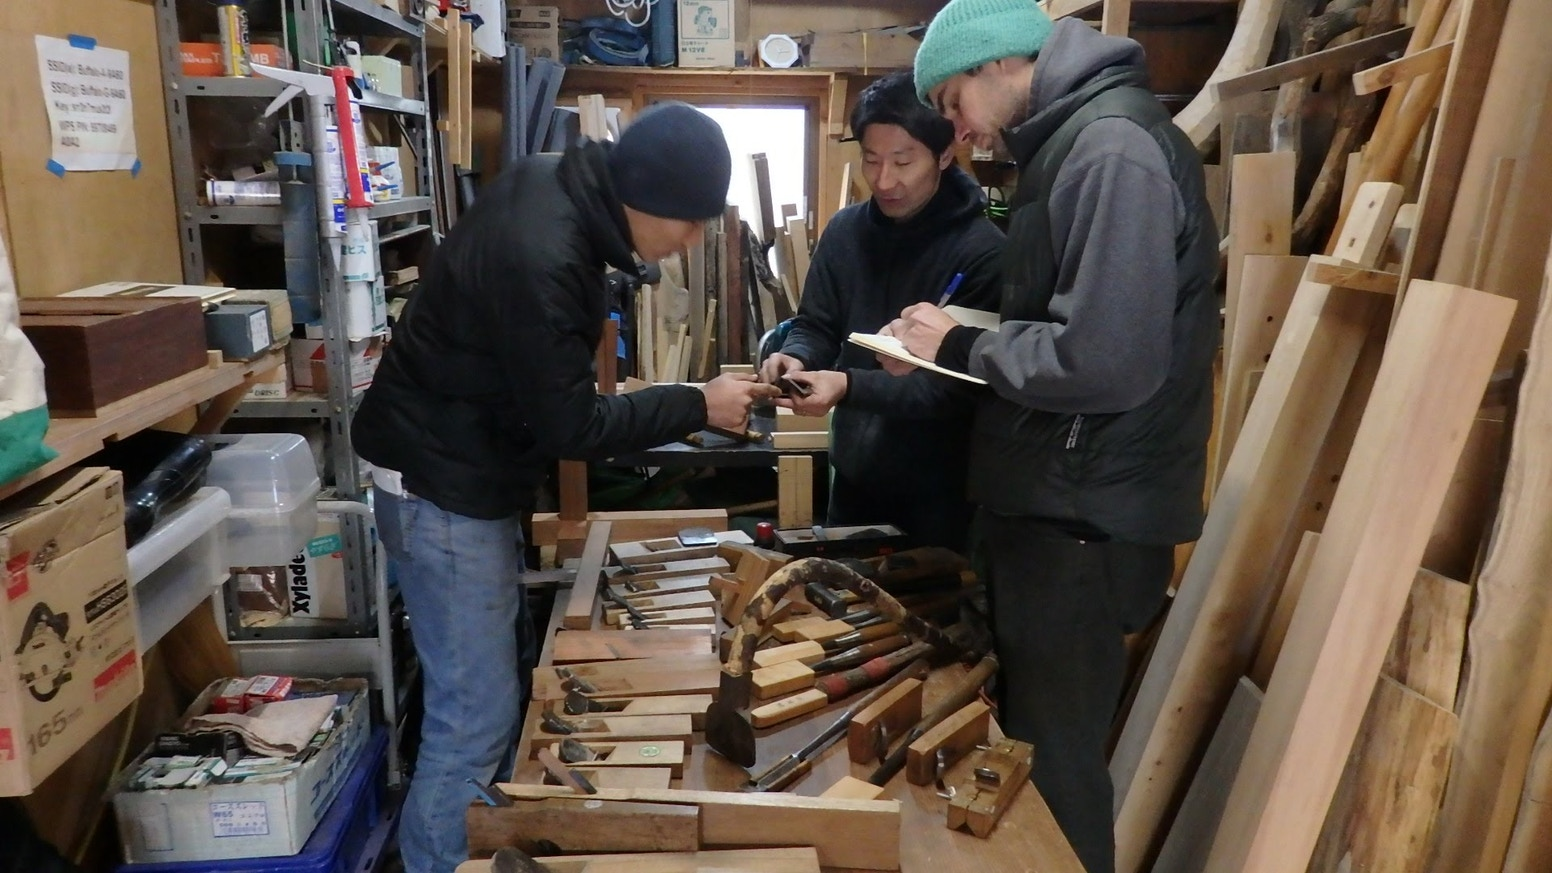 Study Woodworking in Japan! is the top crowdfunding project launched today. Study Woodworking in Japan! raised over $3581433 from 221 backers. Other top projects include Trudvang Chronicles - Stormlands, Traveller RPG: Element Class Cruisers Box Set, Siren Song: Red Eye Ruby's Debut LP...